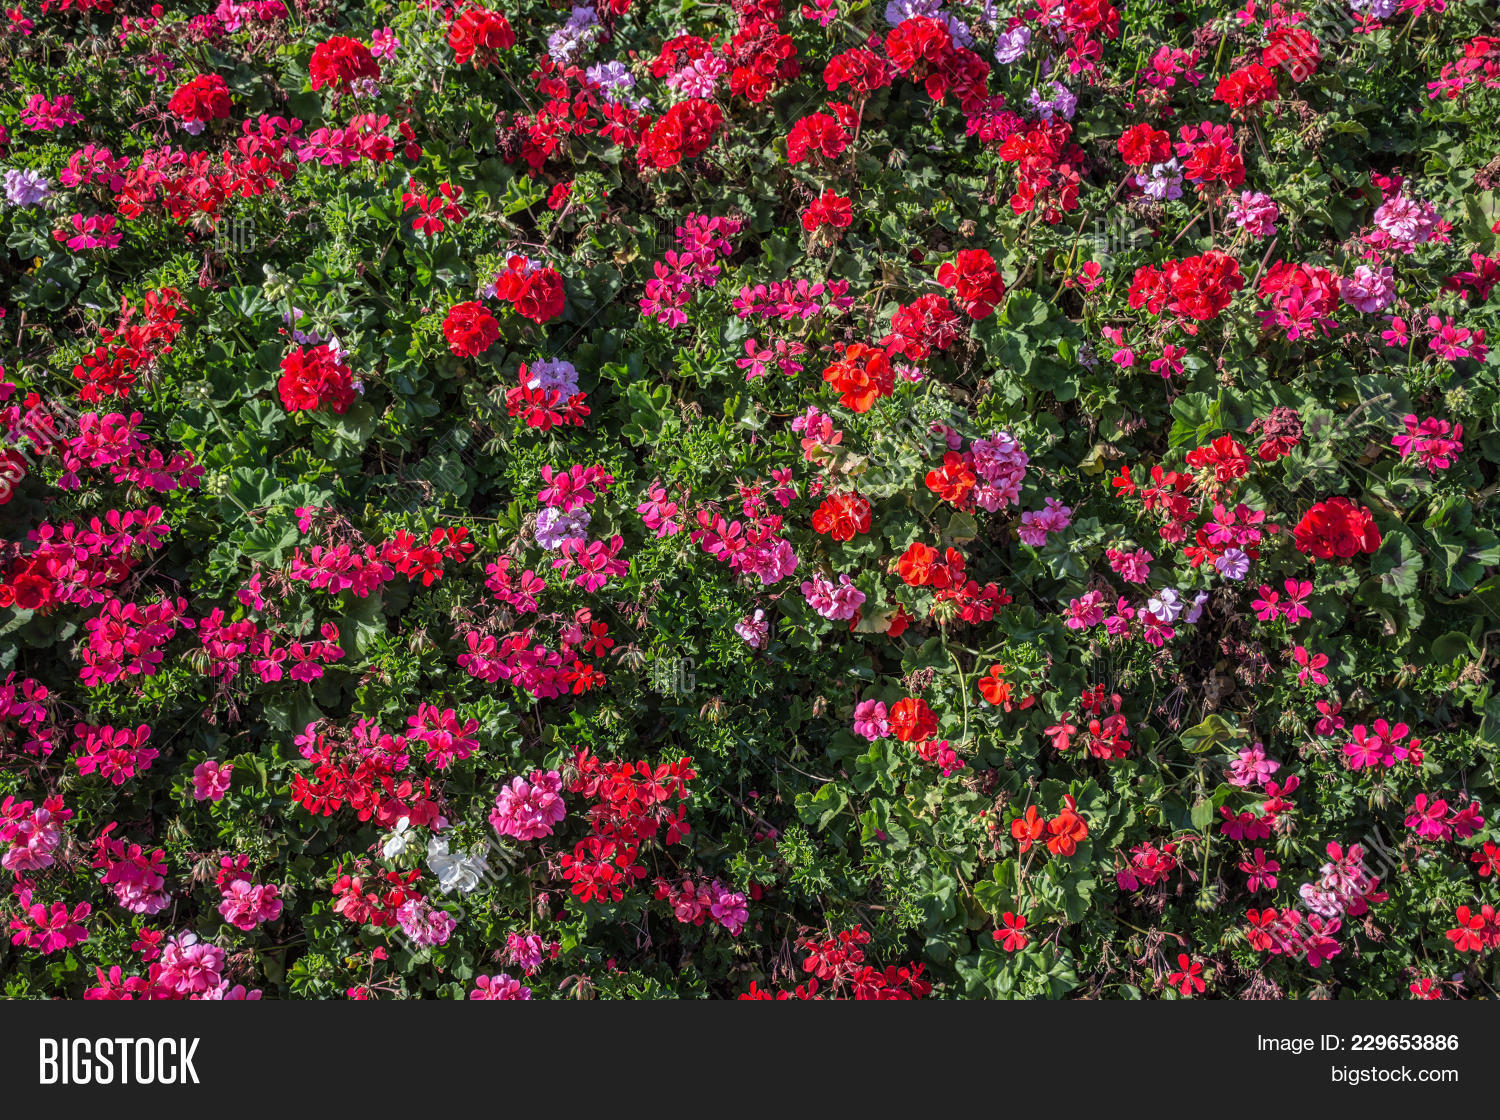 Pink Flowers On Bush Image Photo Free Trial Bigstock